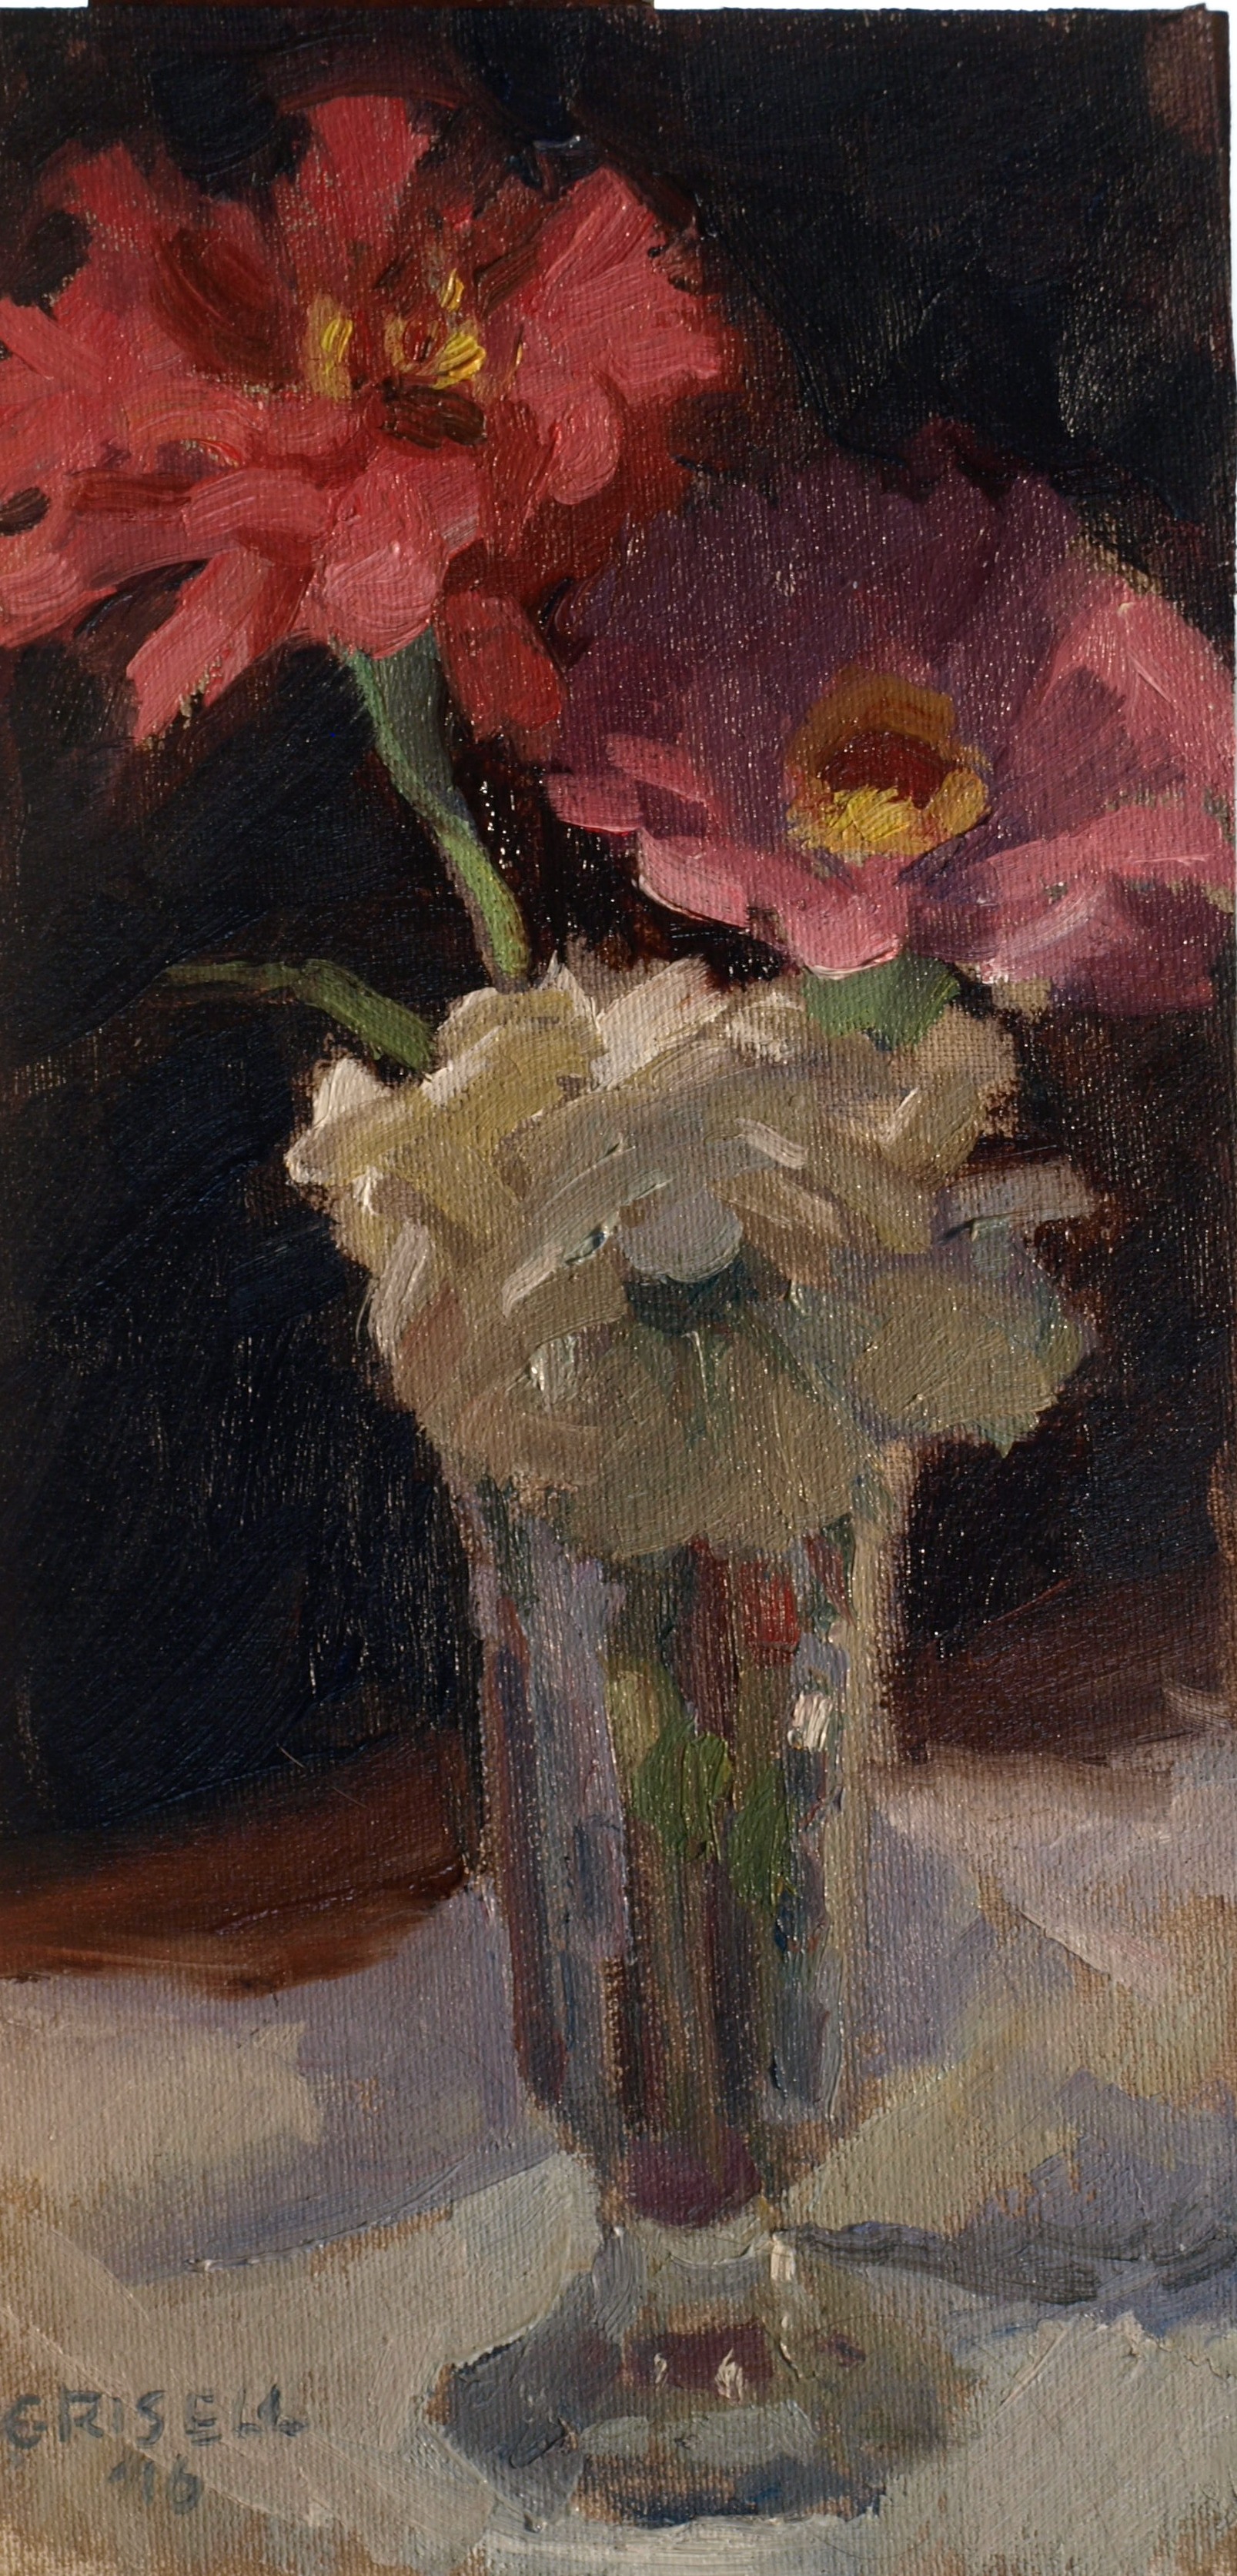 Zinnias, Oil on Canvas on Panel, 12 x 6 Inches, by Susan Grisell, $200